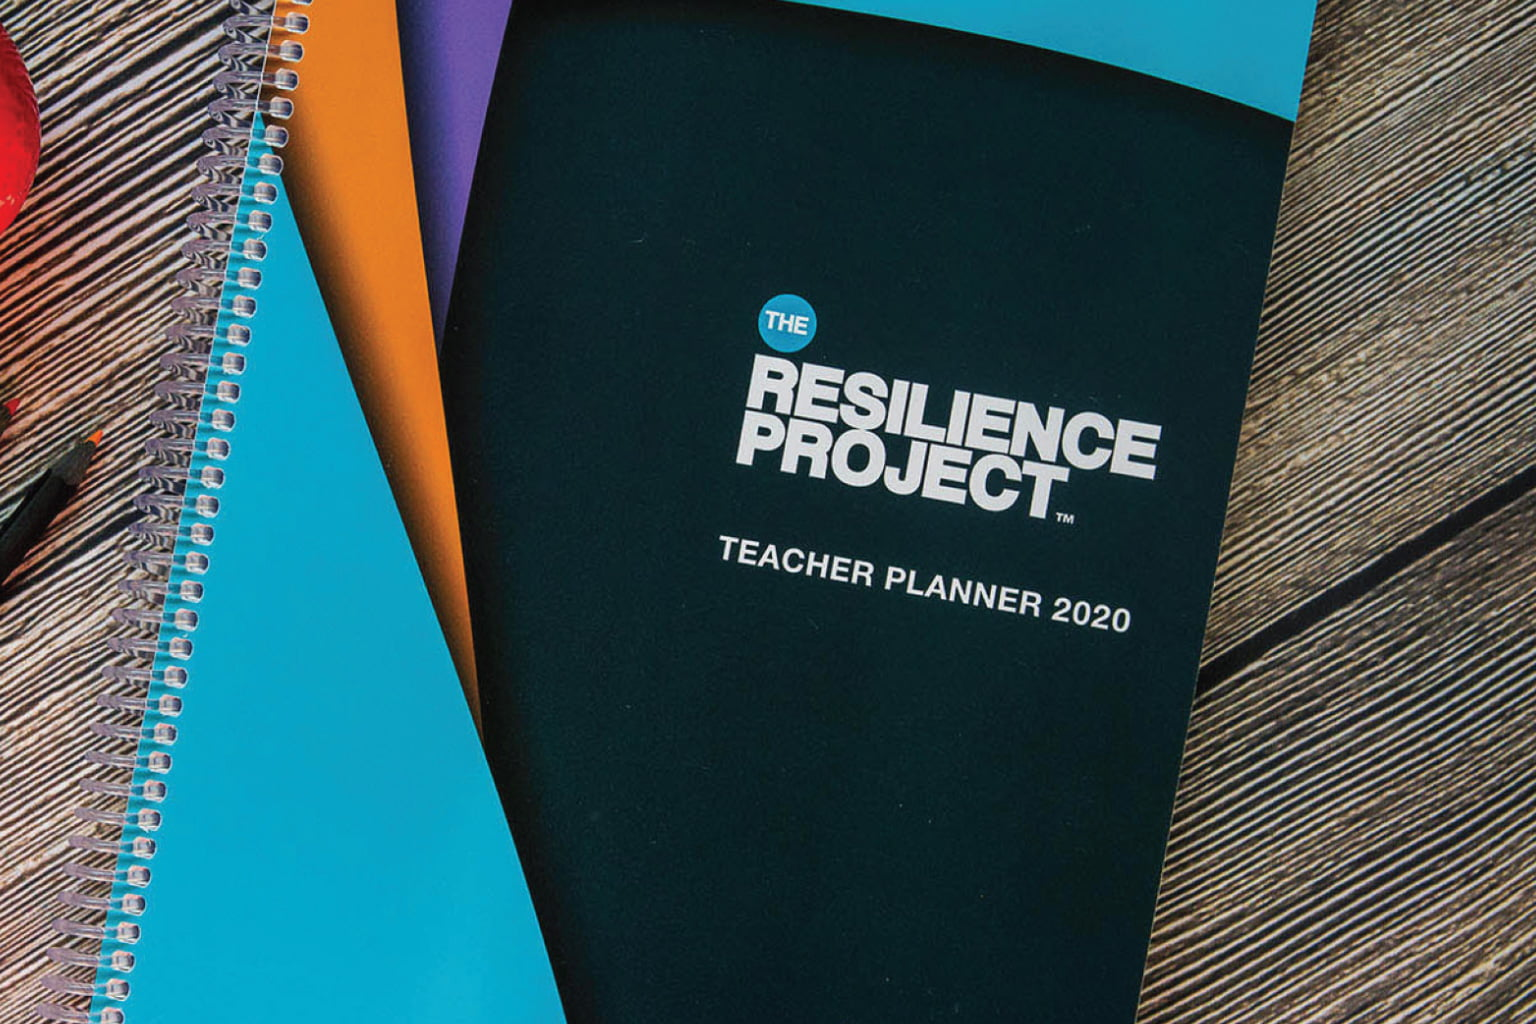 The Resilience Project - Product Dynamics